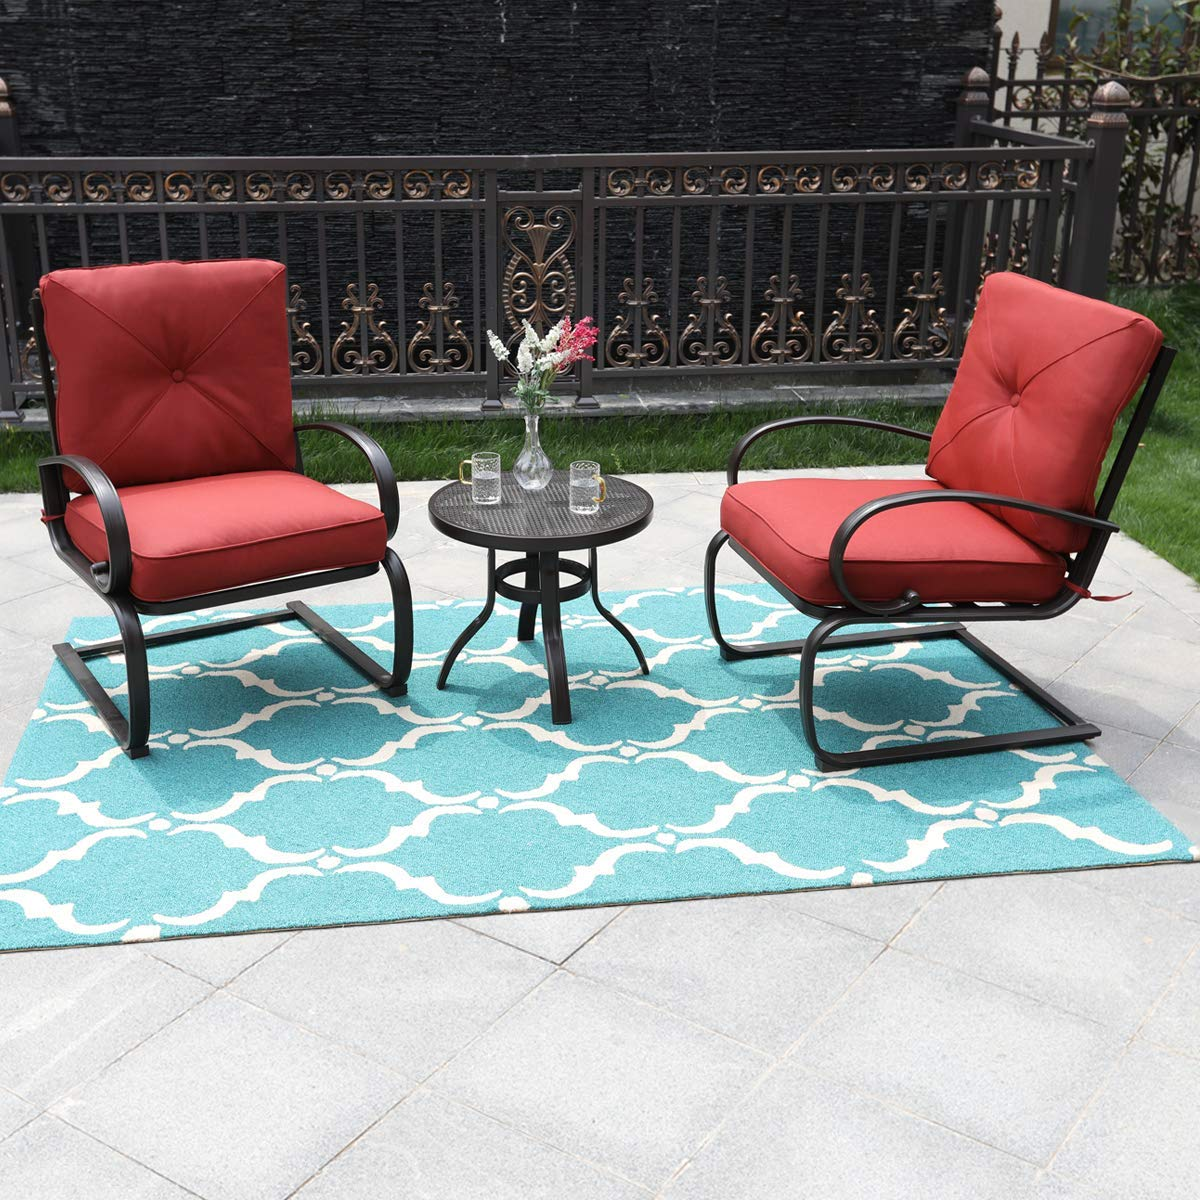 Phi Villa Outdoor C Spring Metal Lounge Cushioned Chairs Set Red